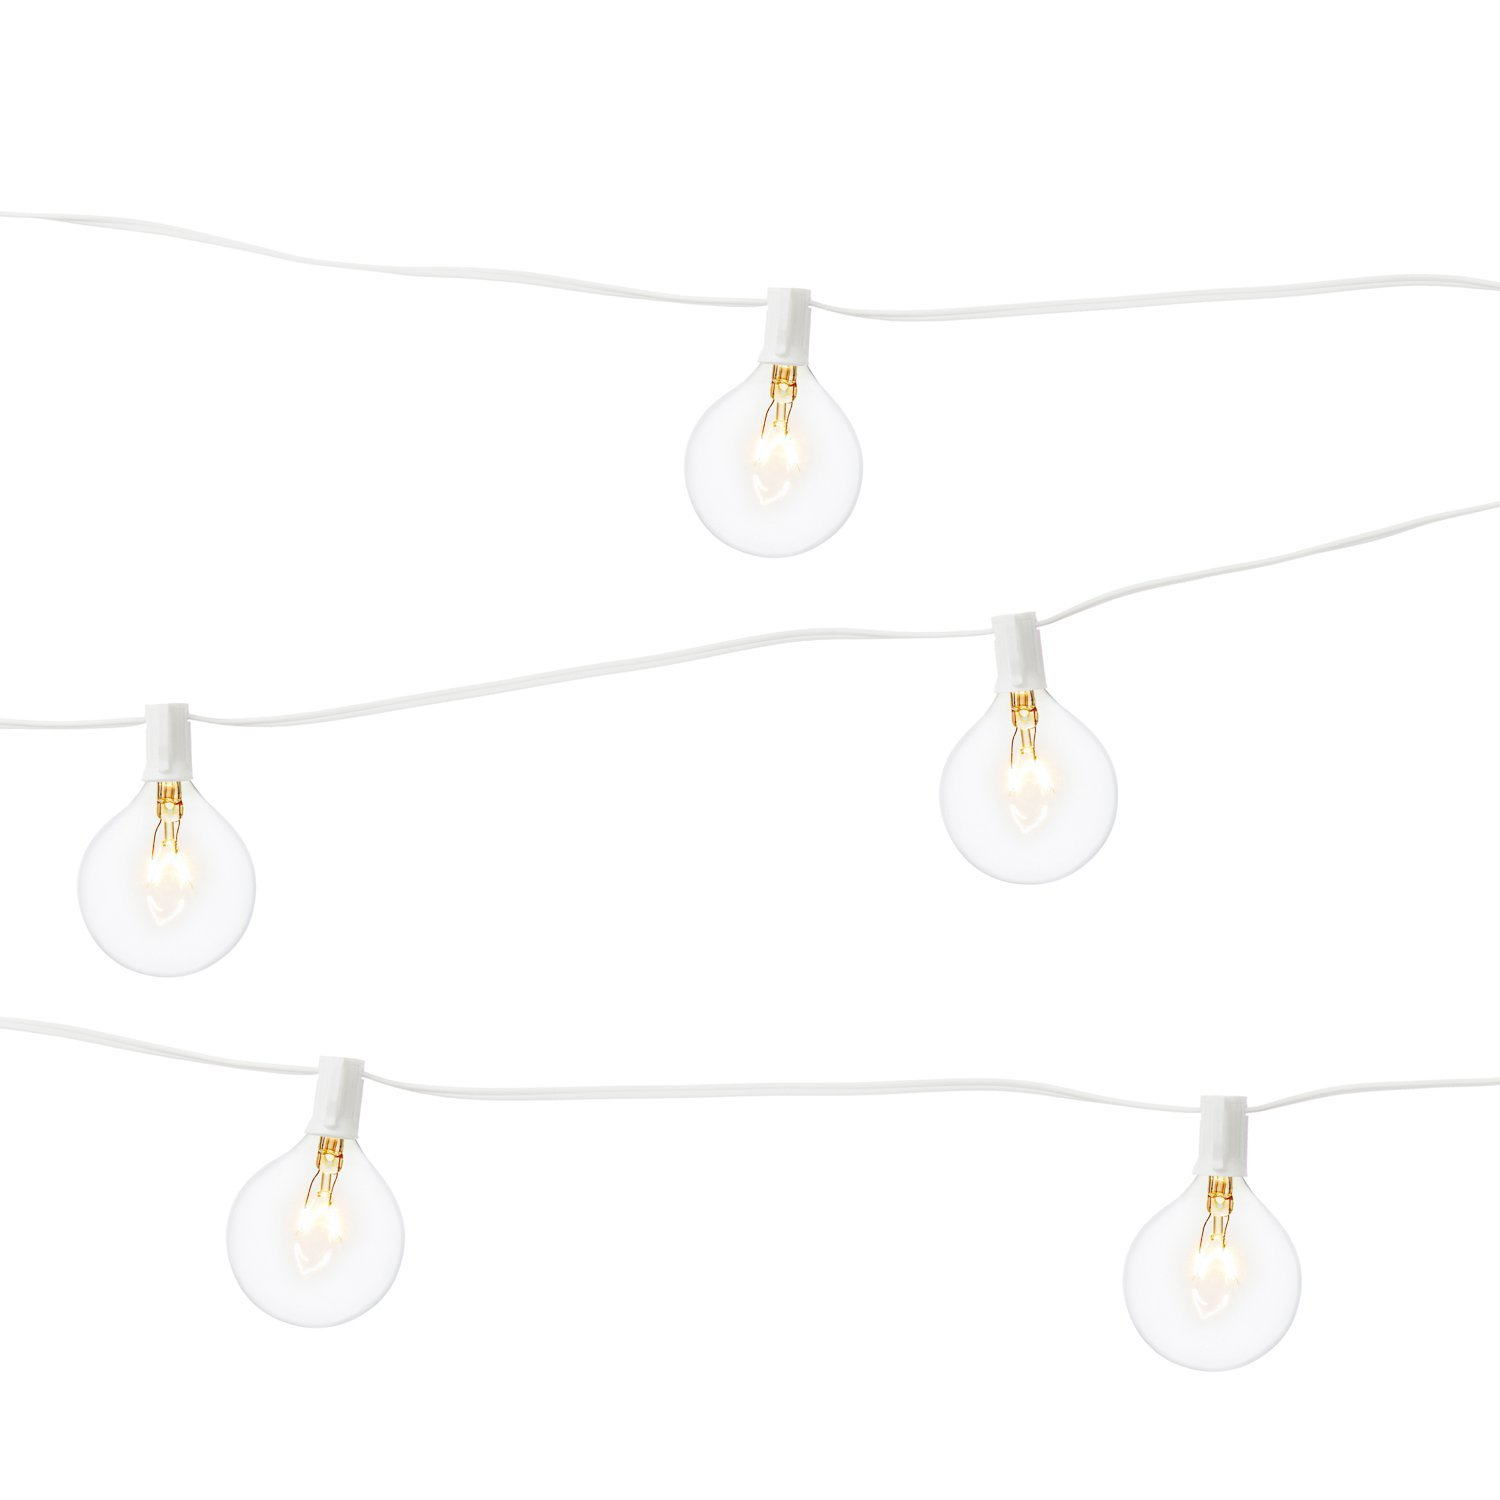 LampLust Bistro Globe String Lights - Outdoor Indoor, G16.5 (G40) Clear Bulbs, 28 Ft. White Wire, Commercial Grade, Connectable, Plugin - UL Listed